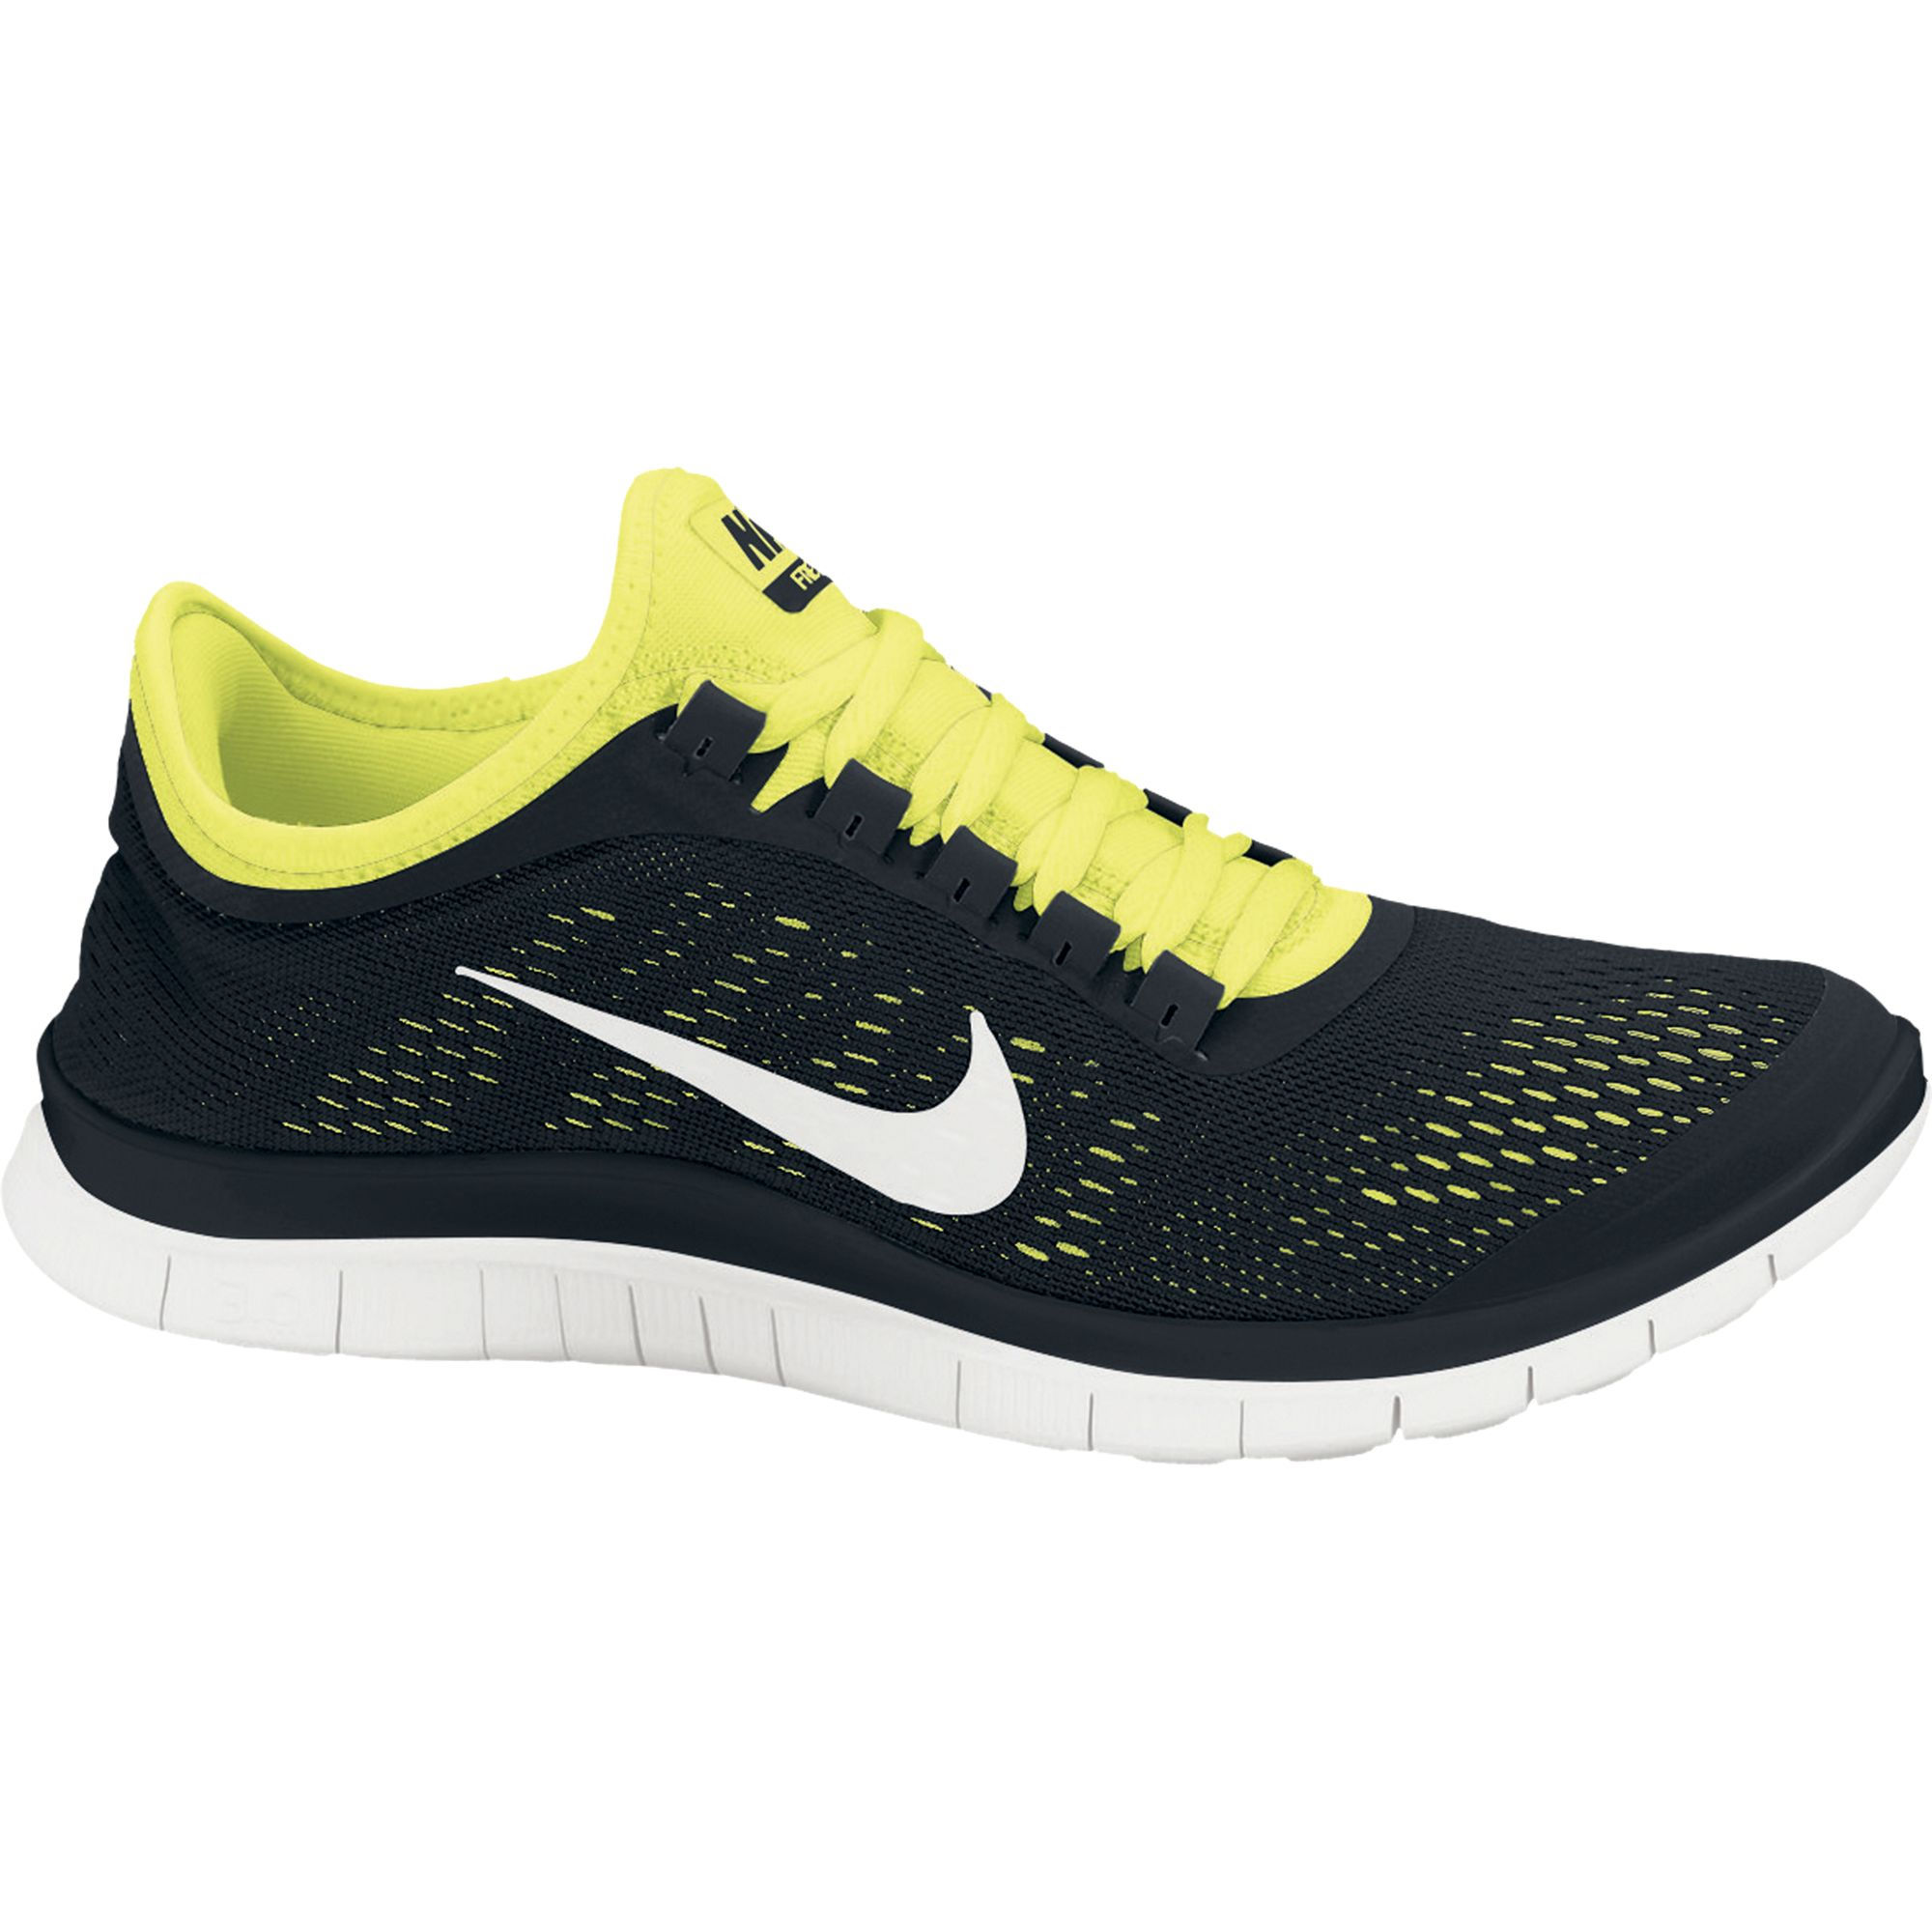 Nike Womens Free 3.0 V3 Running Shoes, Dark Grey, 9